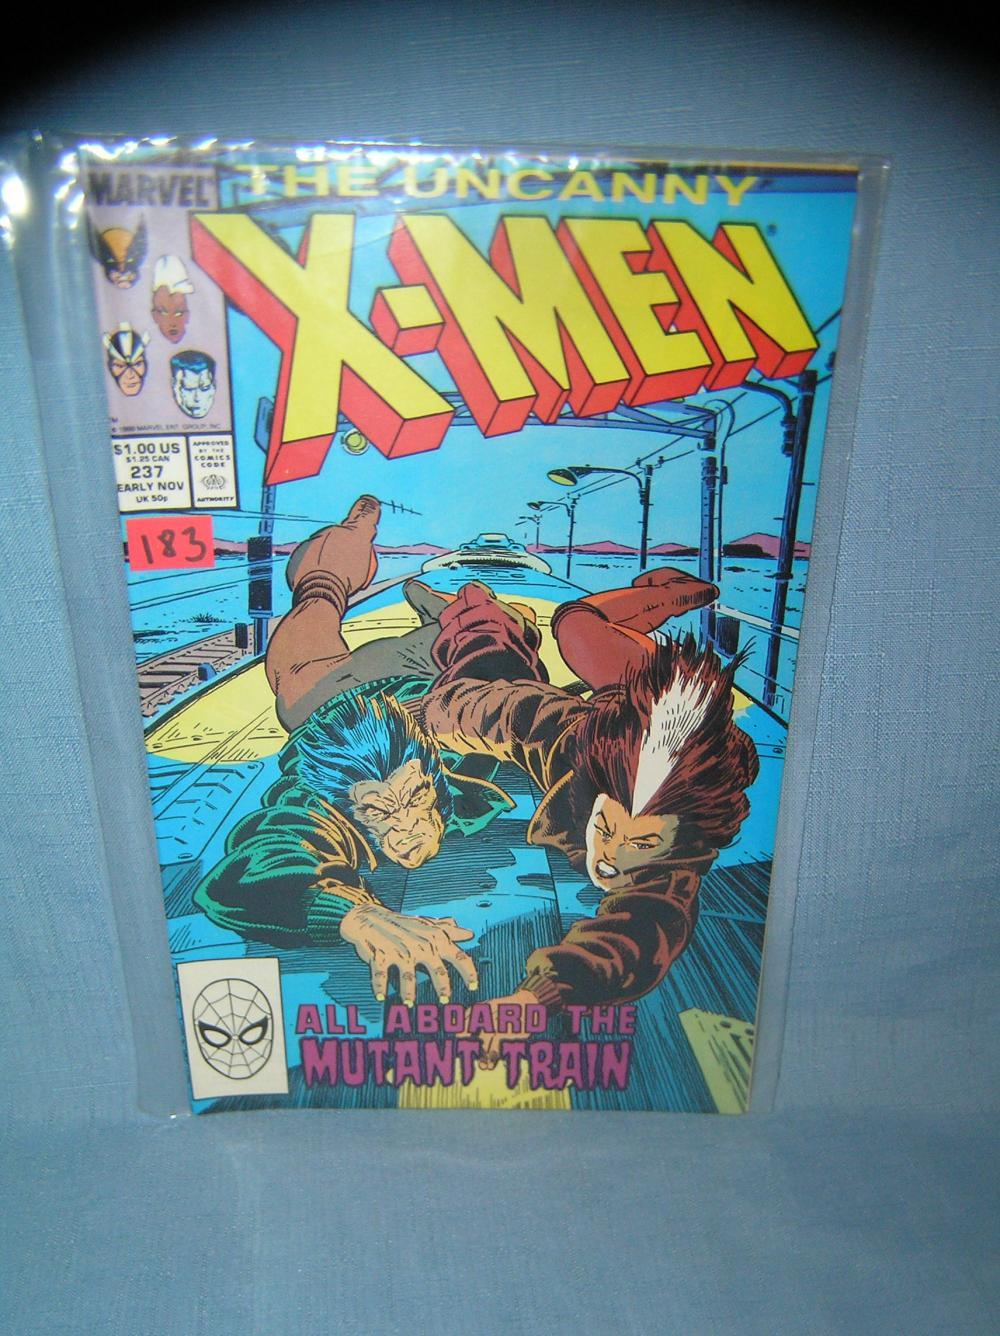 XMEN COMIC BOOK ORIGIN OF GENOSHA WOLVERINE ROGUE